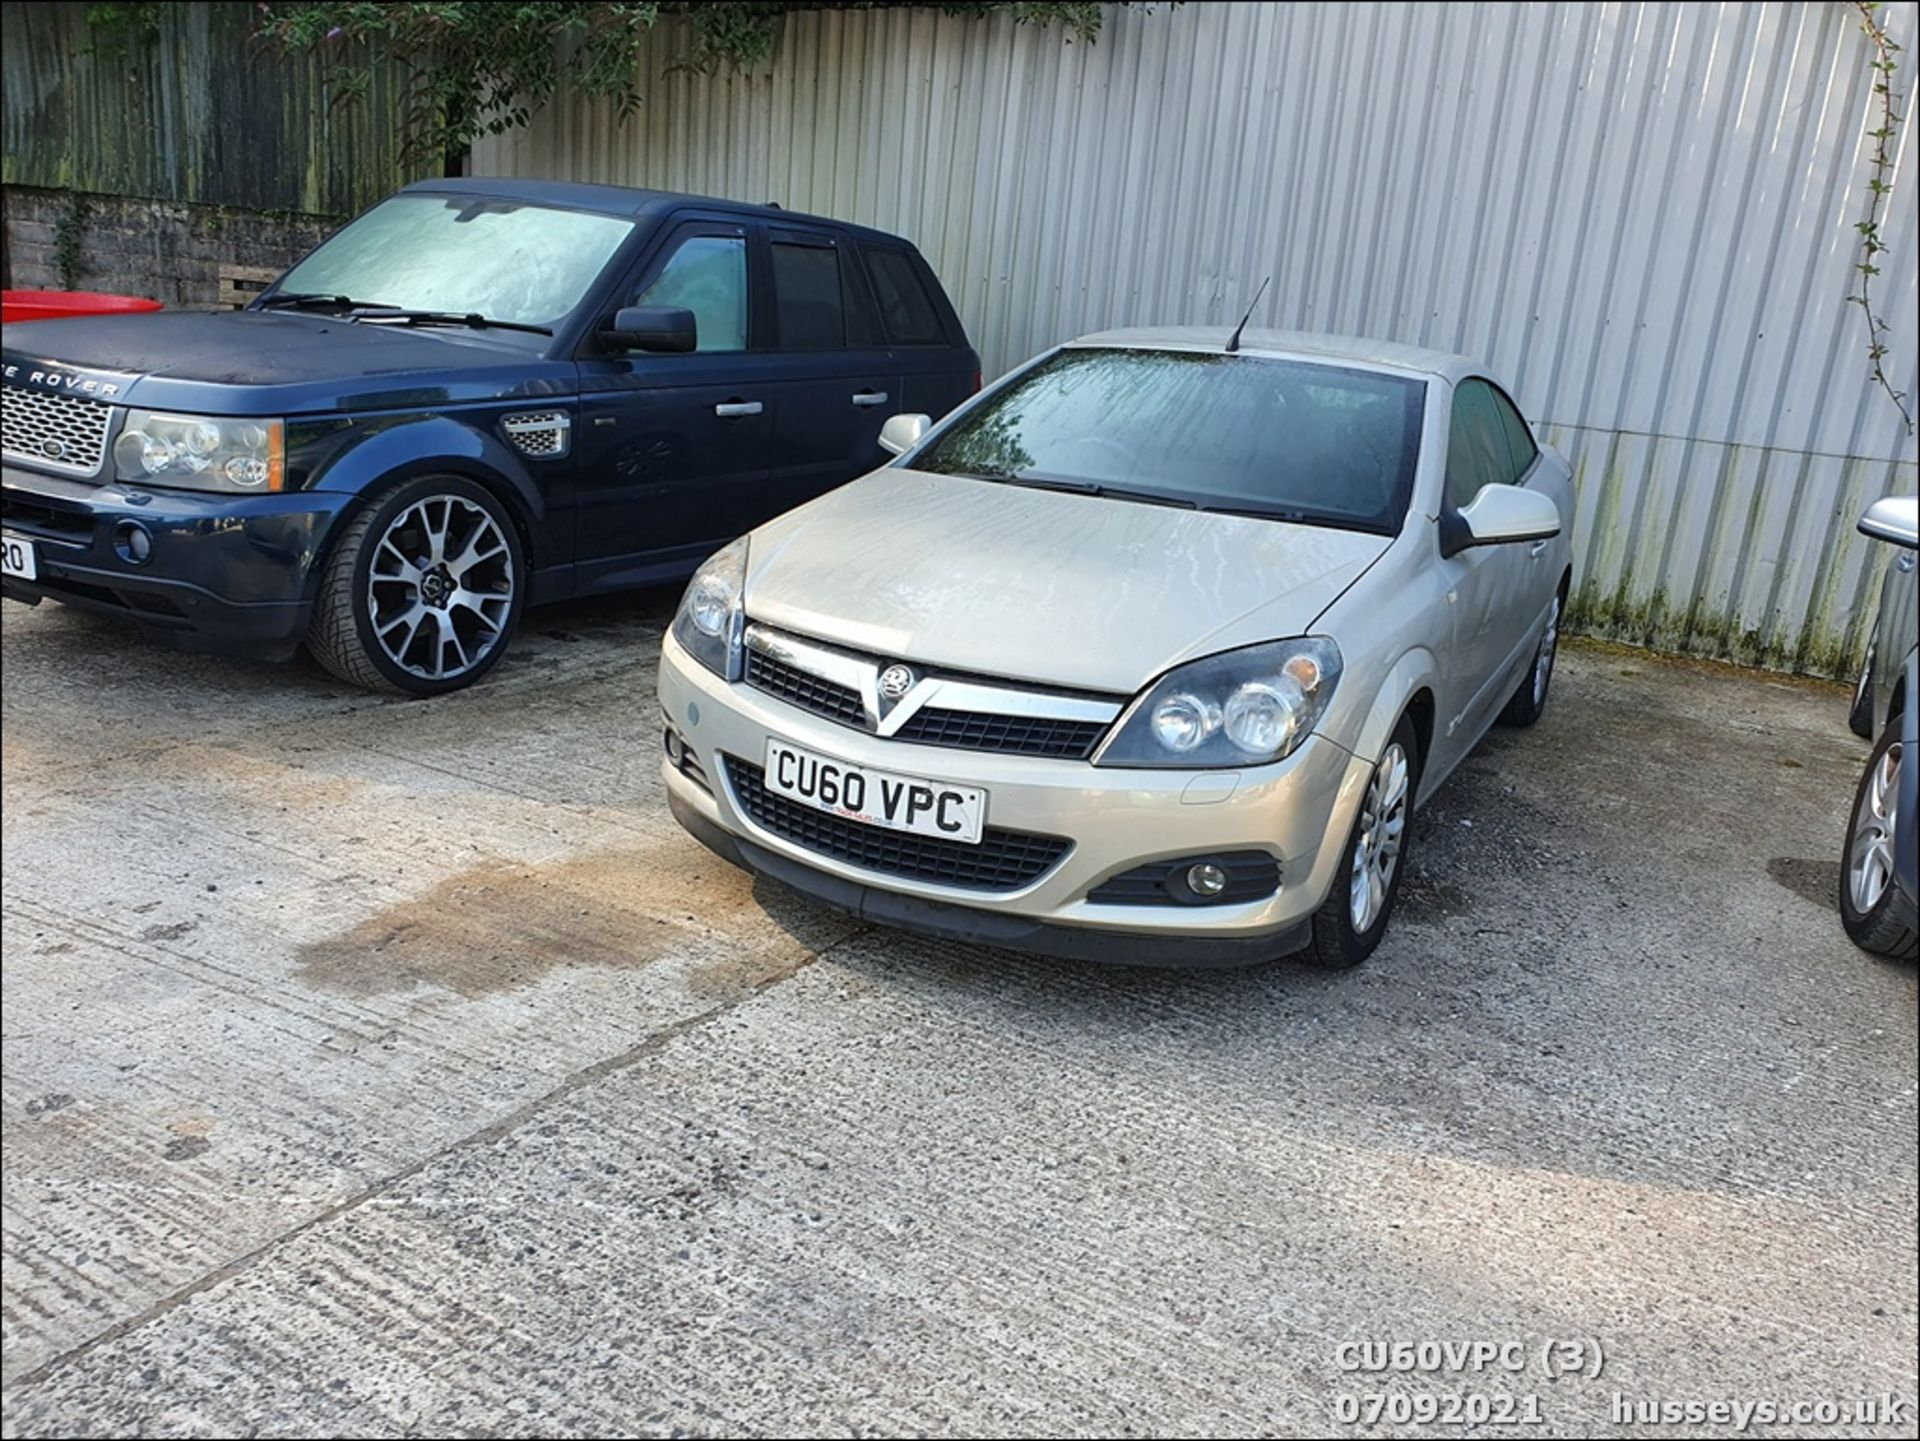 11/60 VAUXHALL ASTRA SPORT - 1796cc 2dr Convertible (Silver, 123k) - Image 3 of 12